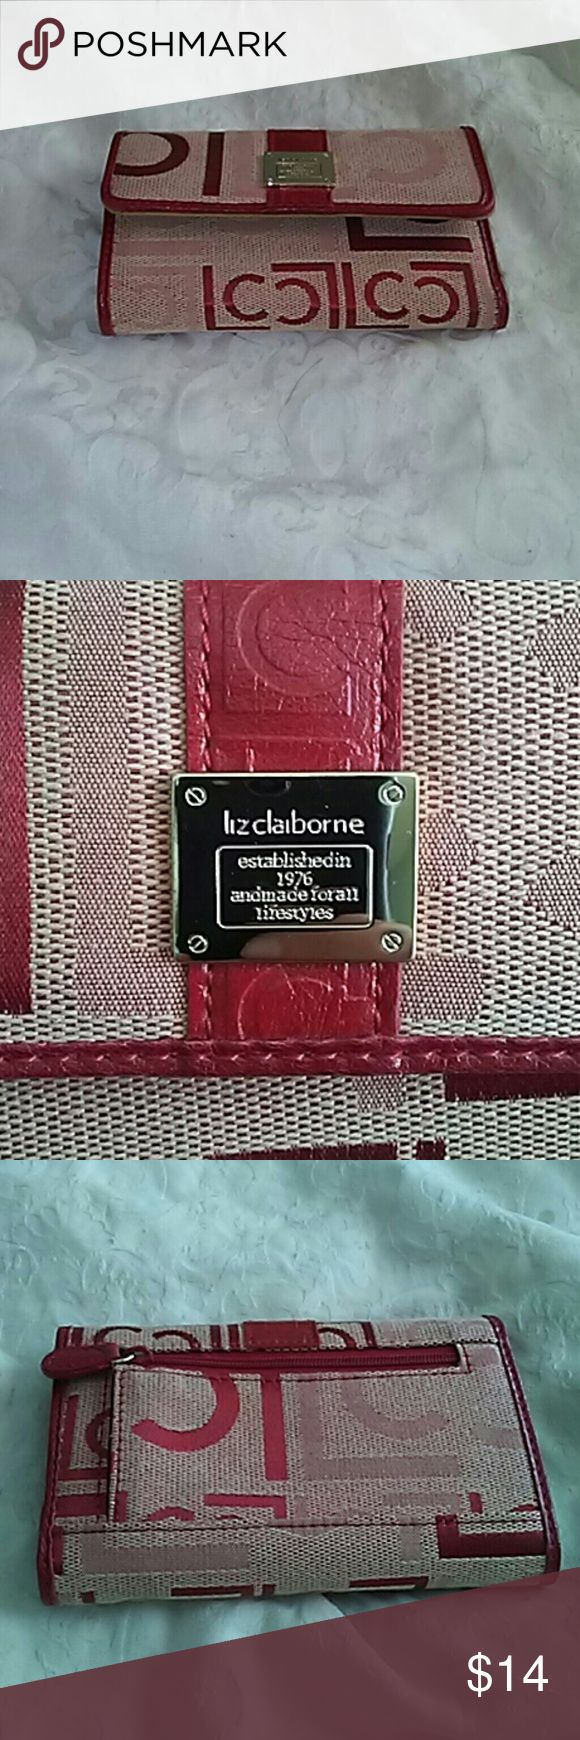 Liz Claiborne SALE!!!! Red wallet. Picture compartment, many credit card slots. Cute, never used. One shade off from the Liz Claiborne purse I have listed however you could never tell. The two are cute together. ***** make an offer to bundle with matching purse on page***** Liz Claiborne Bags Wallets